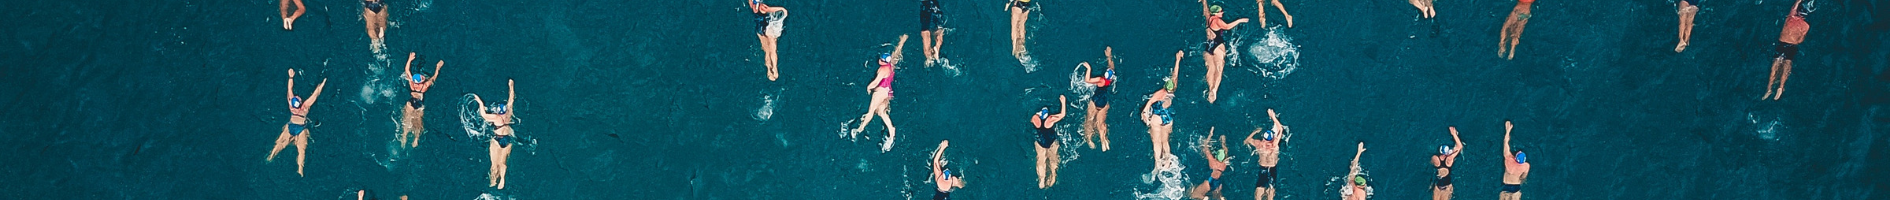 aerial view of people swimming in open water